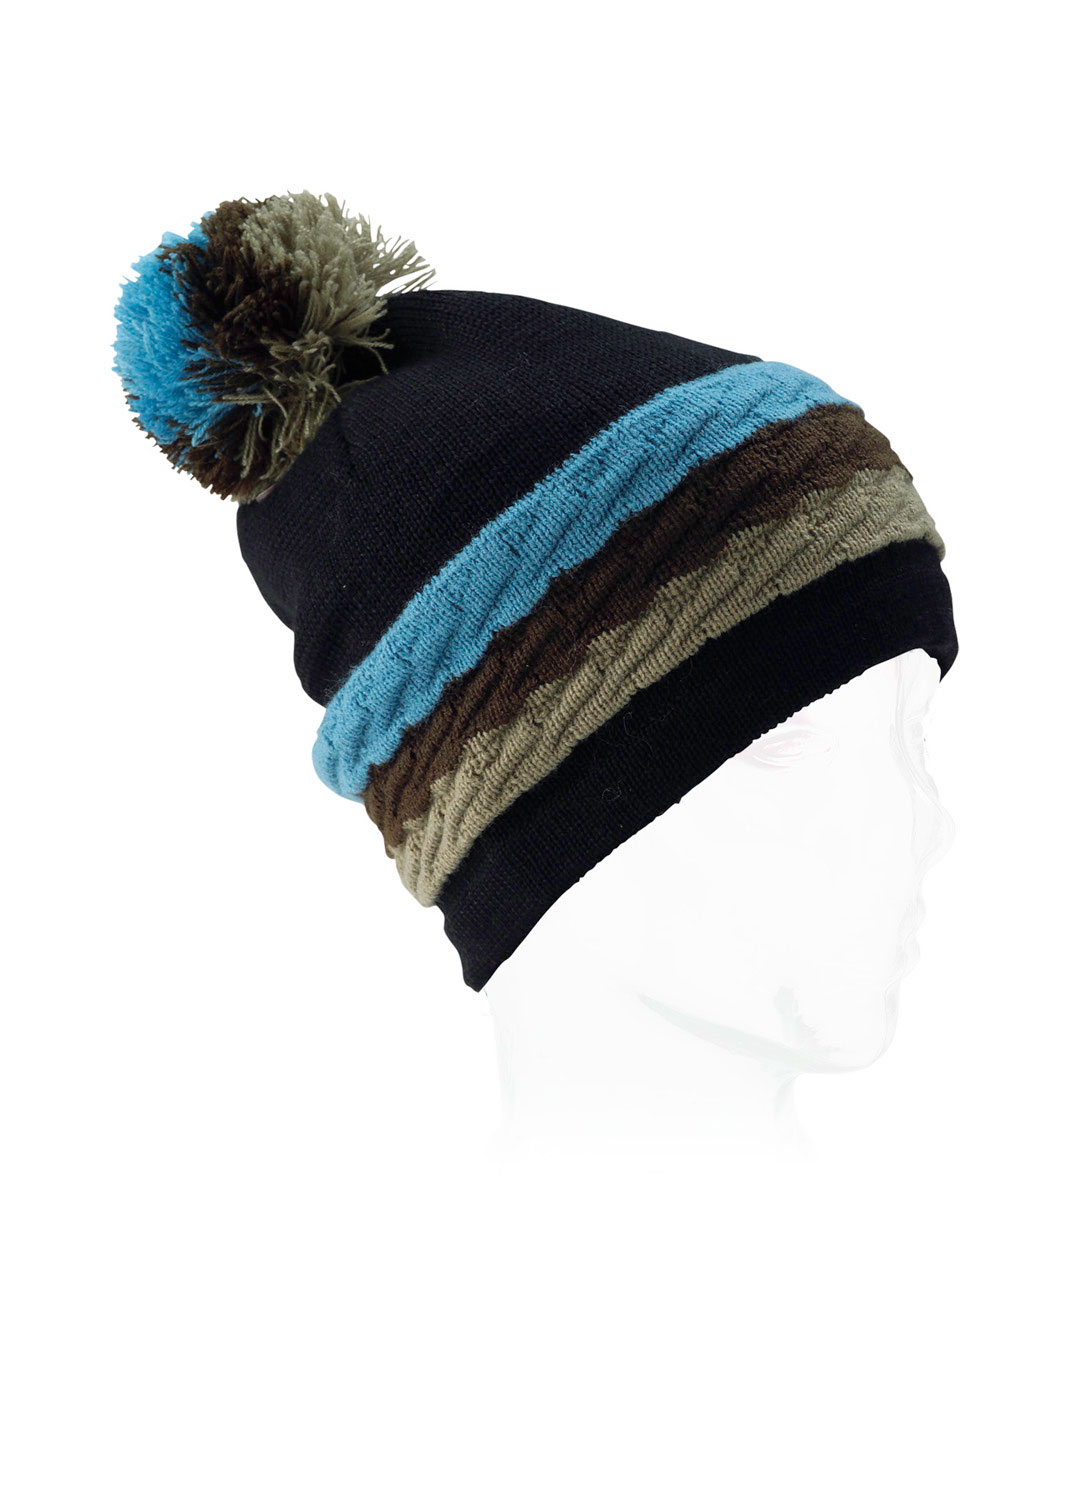 Snowboard Burton has truly outdone themselves with this beanie. A tri-color poofball adorns the top of this generously cut hat, with three cable knit stripes around the forehead. The generous cut gives you that slouchy look that's so in demand these days (plus lots of lee room to pull the thing down over your ears when the weather demands it). The Burton logo is very tastefully placed in the poof ball itself. Why not give this beanie a spin this cold weather season?Key Features of the Burton Love Beanie: 60% Acrylic, 40% Merino Wool Horizontal Cable Striped Beanie Burton Logo Charm at Pom Slouchy Fit - $14.95